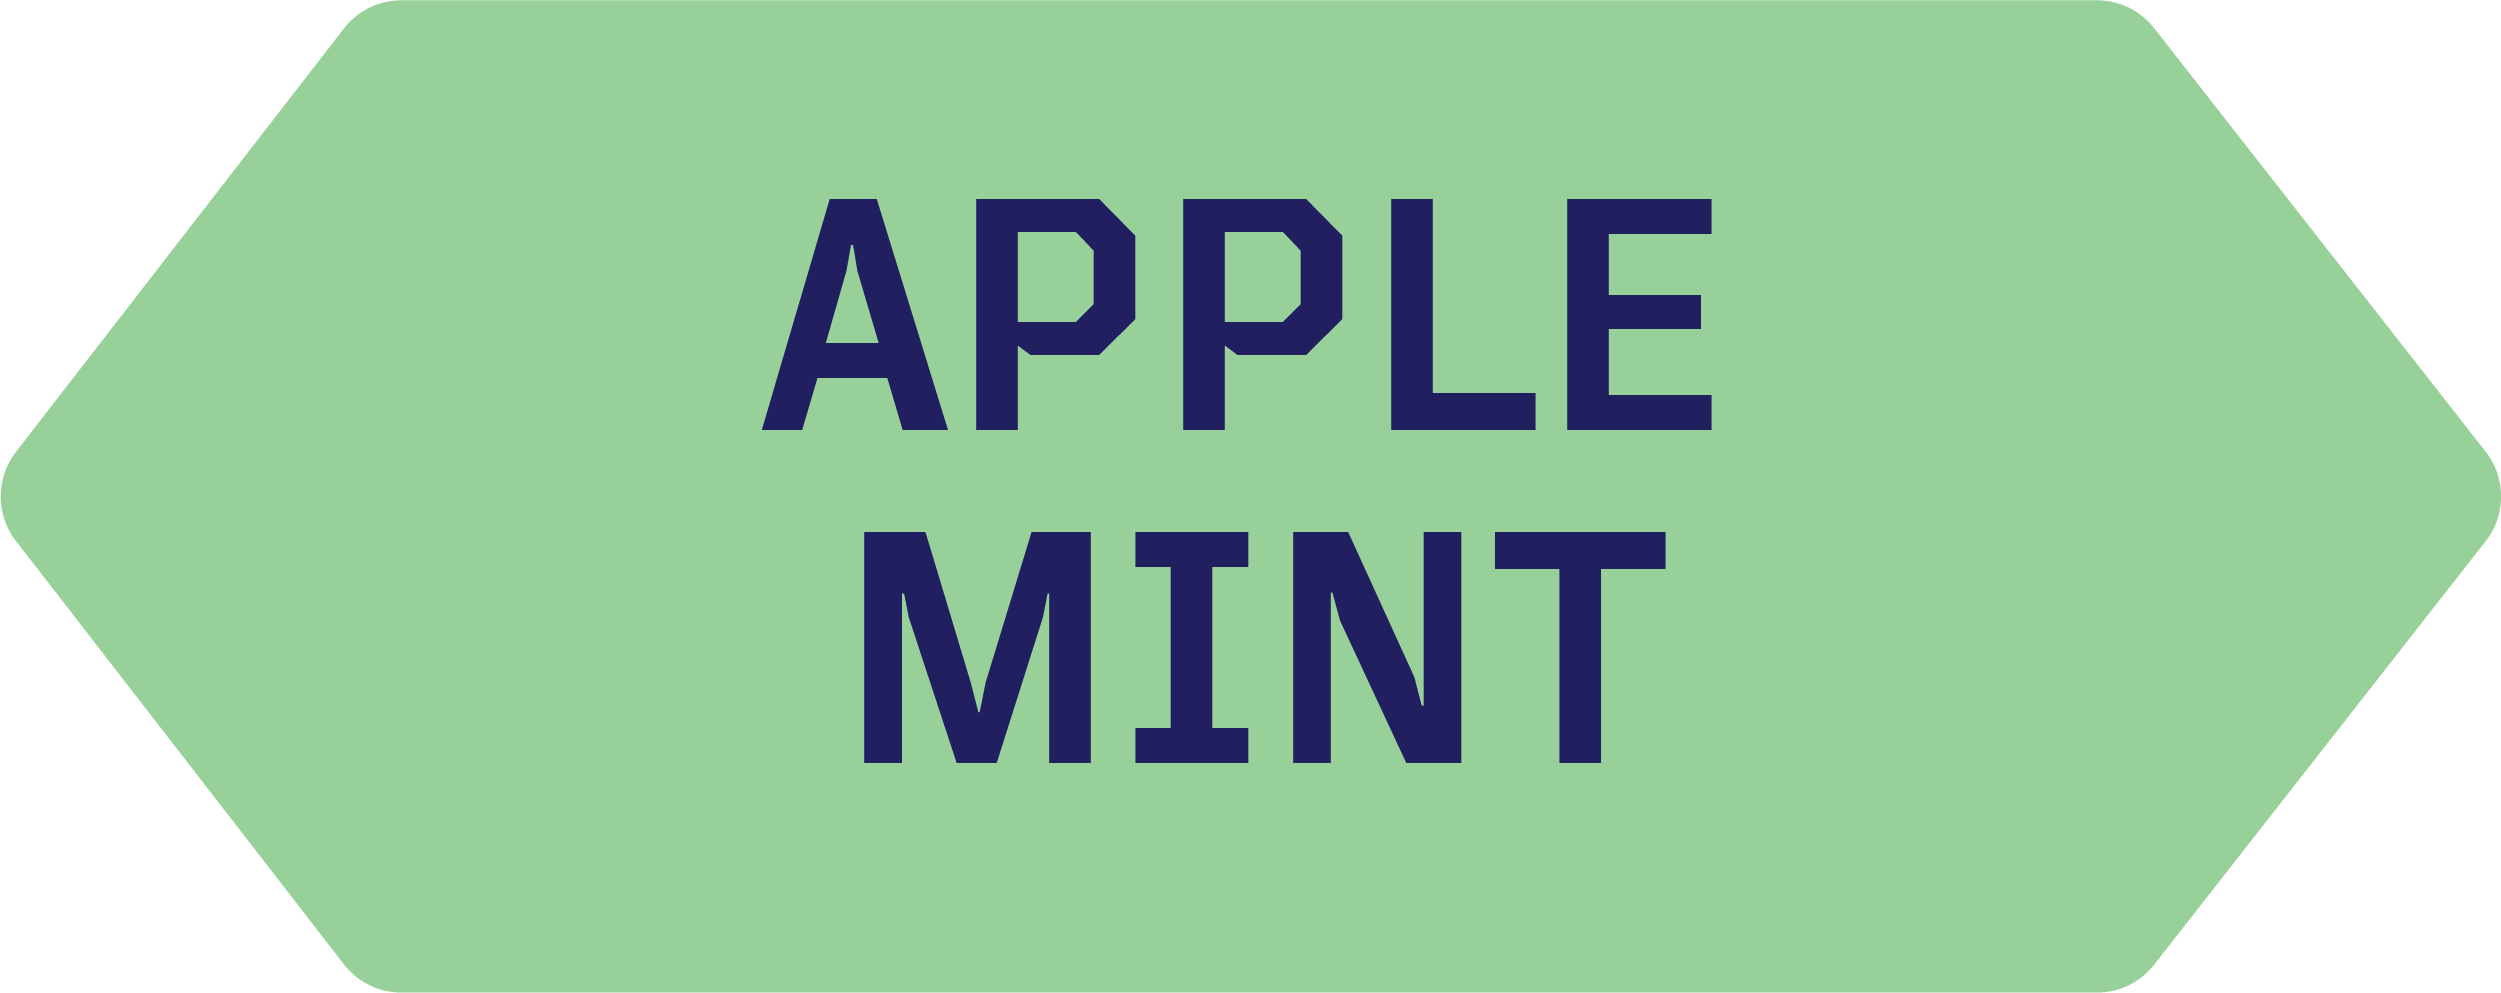 Apple-Mint